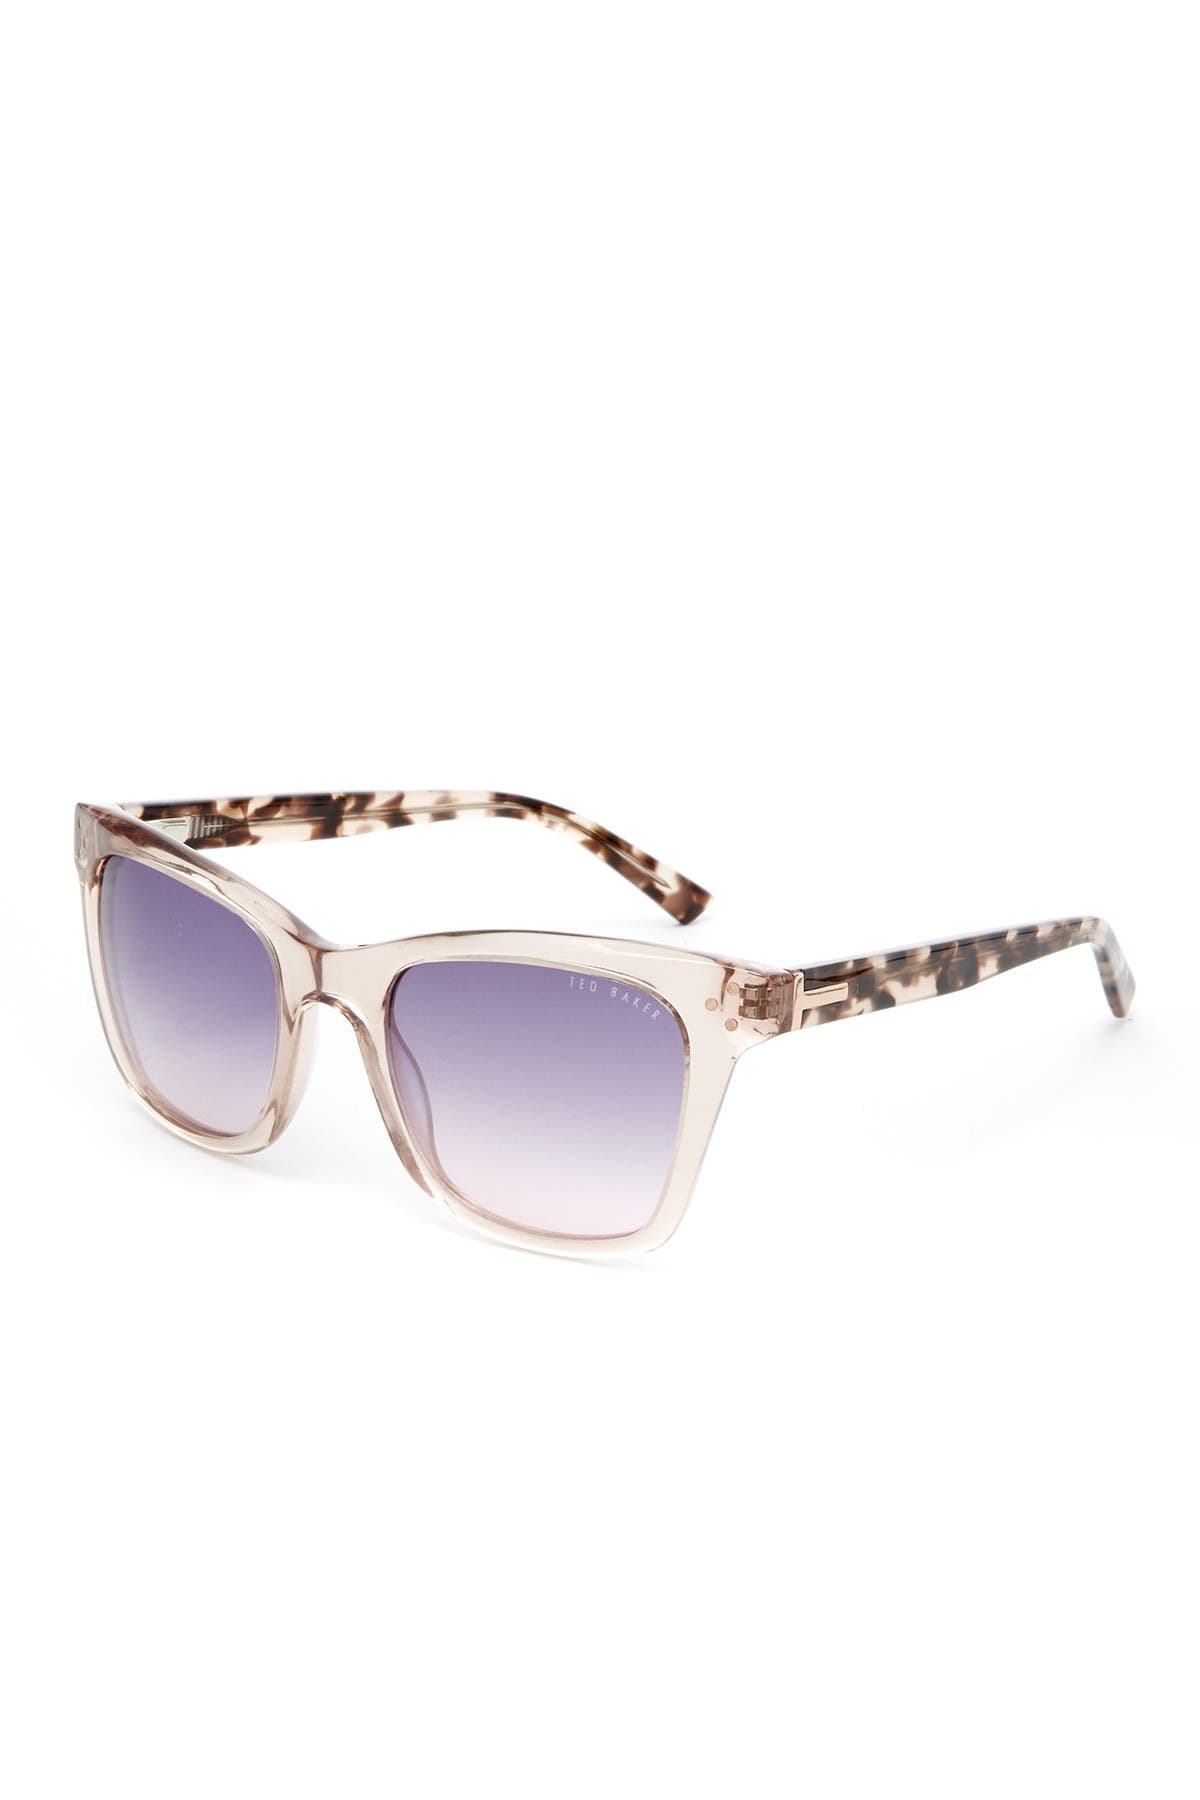 Image of Ted Baker London 56mm Square Cat Eye Sunglasses